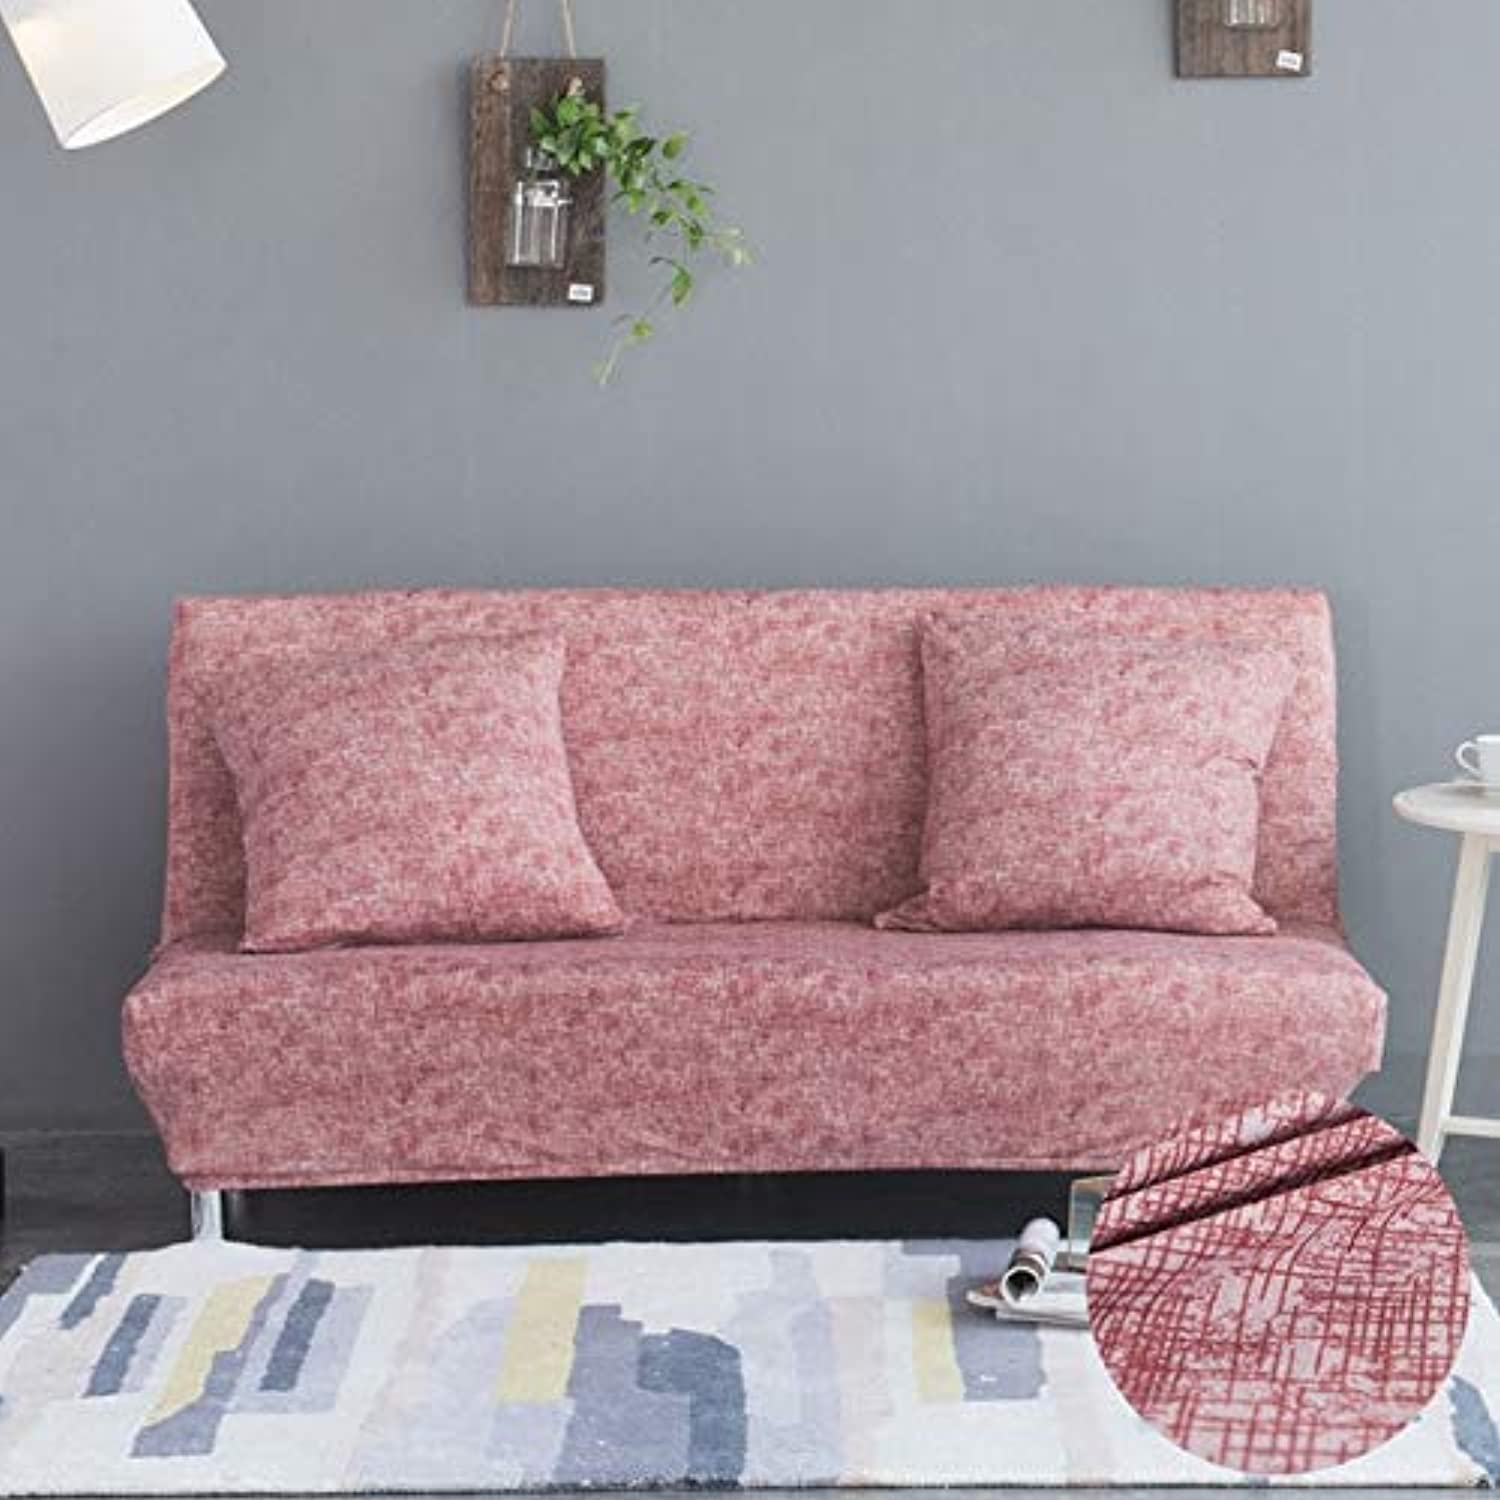 Stripped Pattern Folding Sofa Bed Cover No Armrest All-Inclusive Slip-Resistant Couch Cover Stretch Slipcover housse de canap   color 4, L 160-185cm